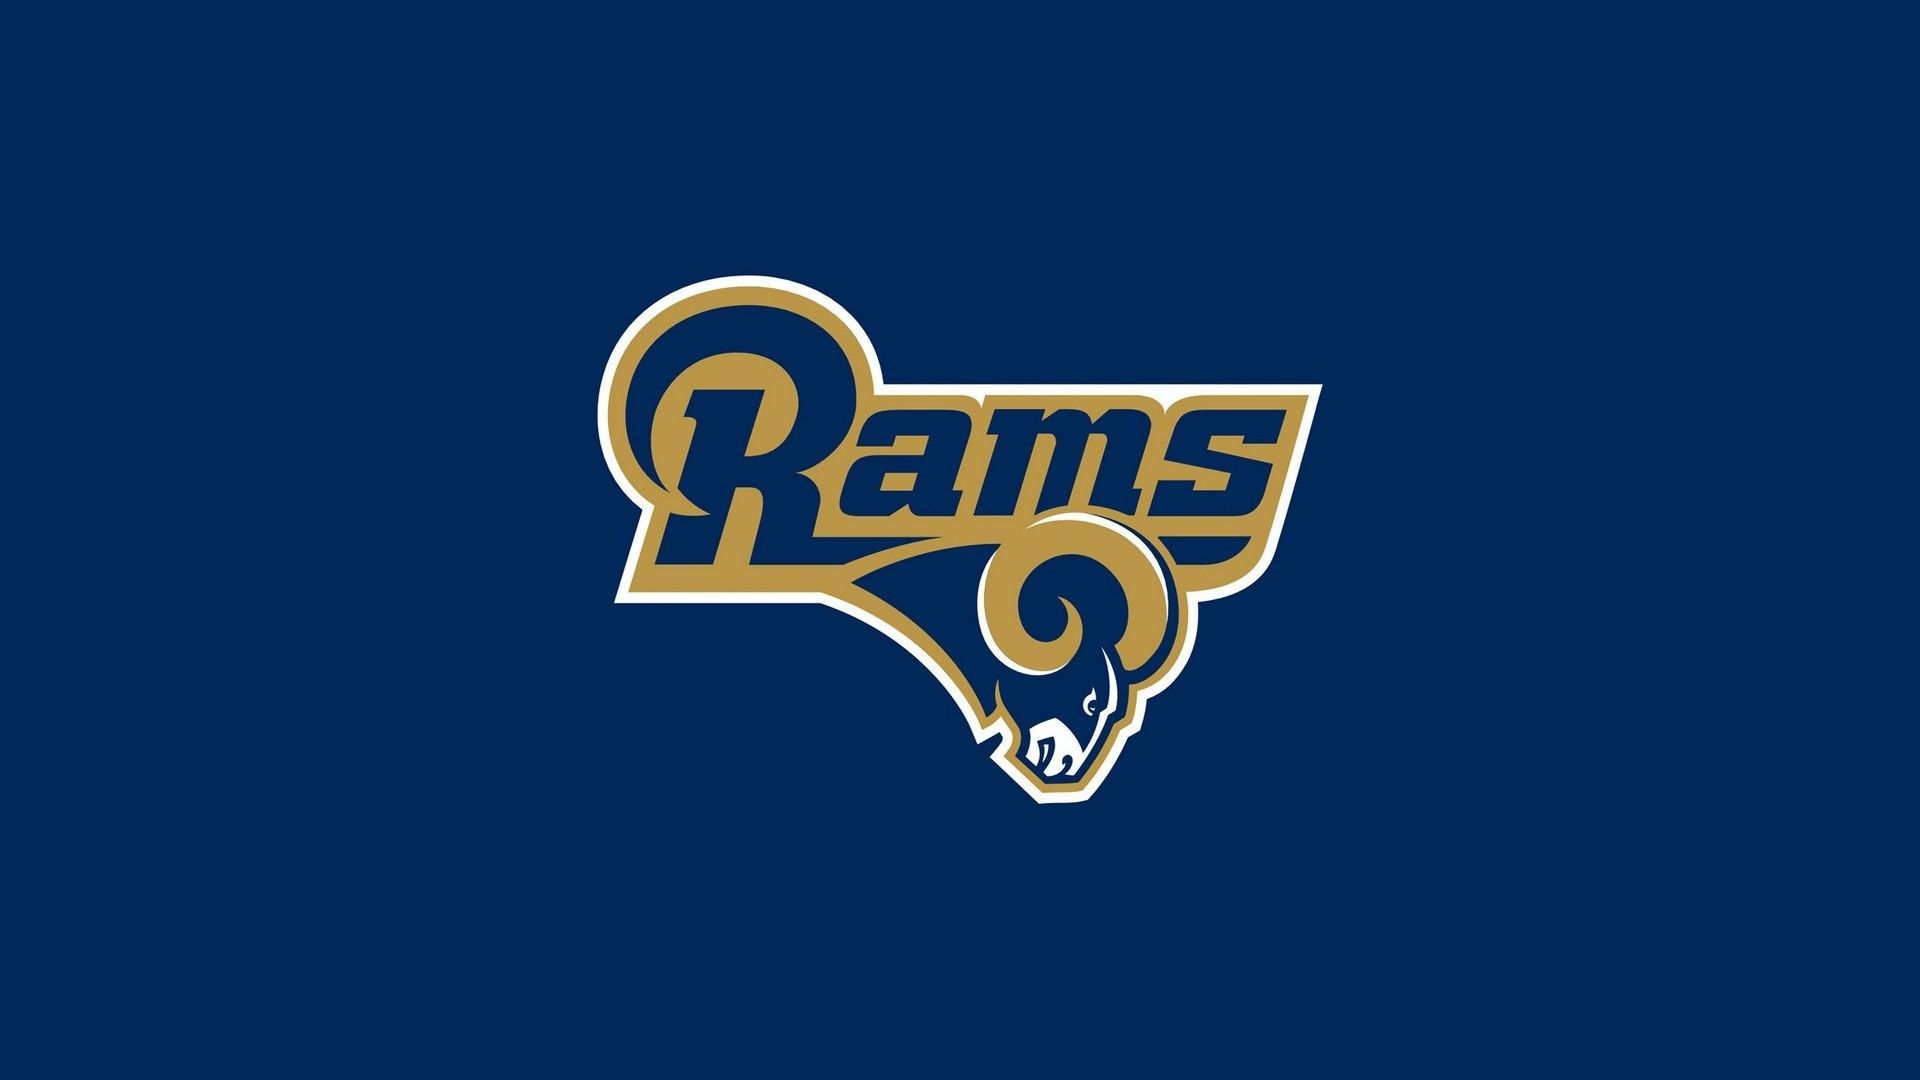 Los Angeles Rams Wallpaper Hd 2020 Nfl Football Wallpapers Ram Wallpaper Los Angeles Rams Nfl Football Wallpaper